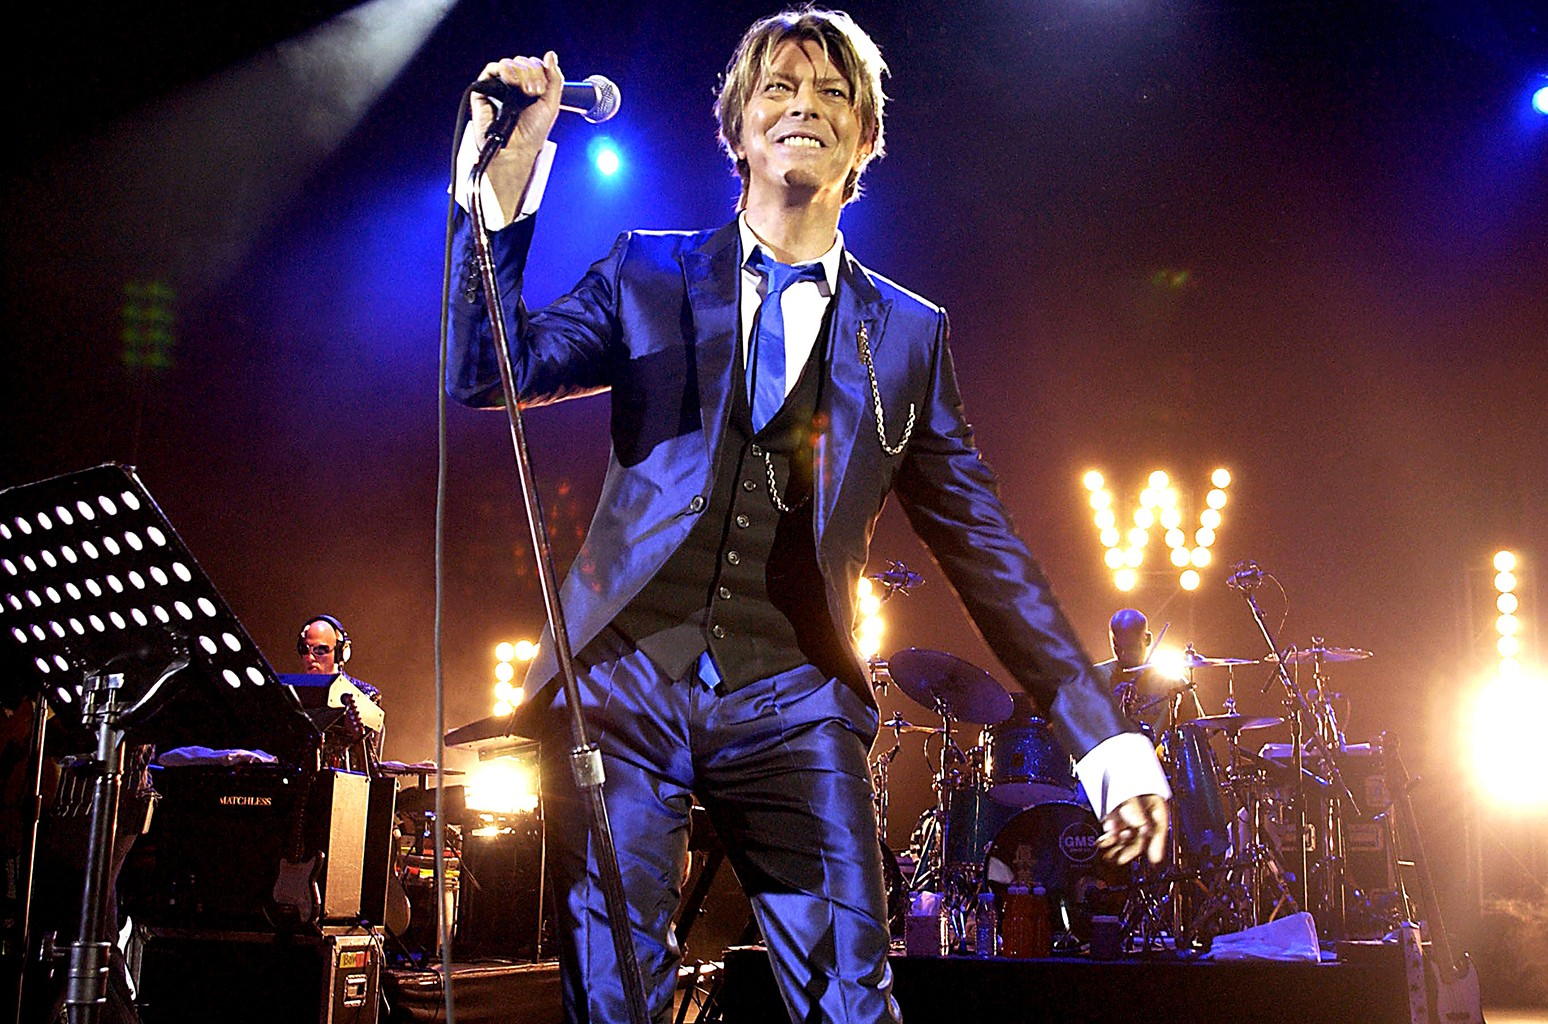 David Bowie performs in London.